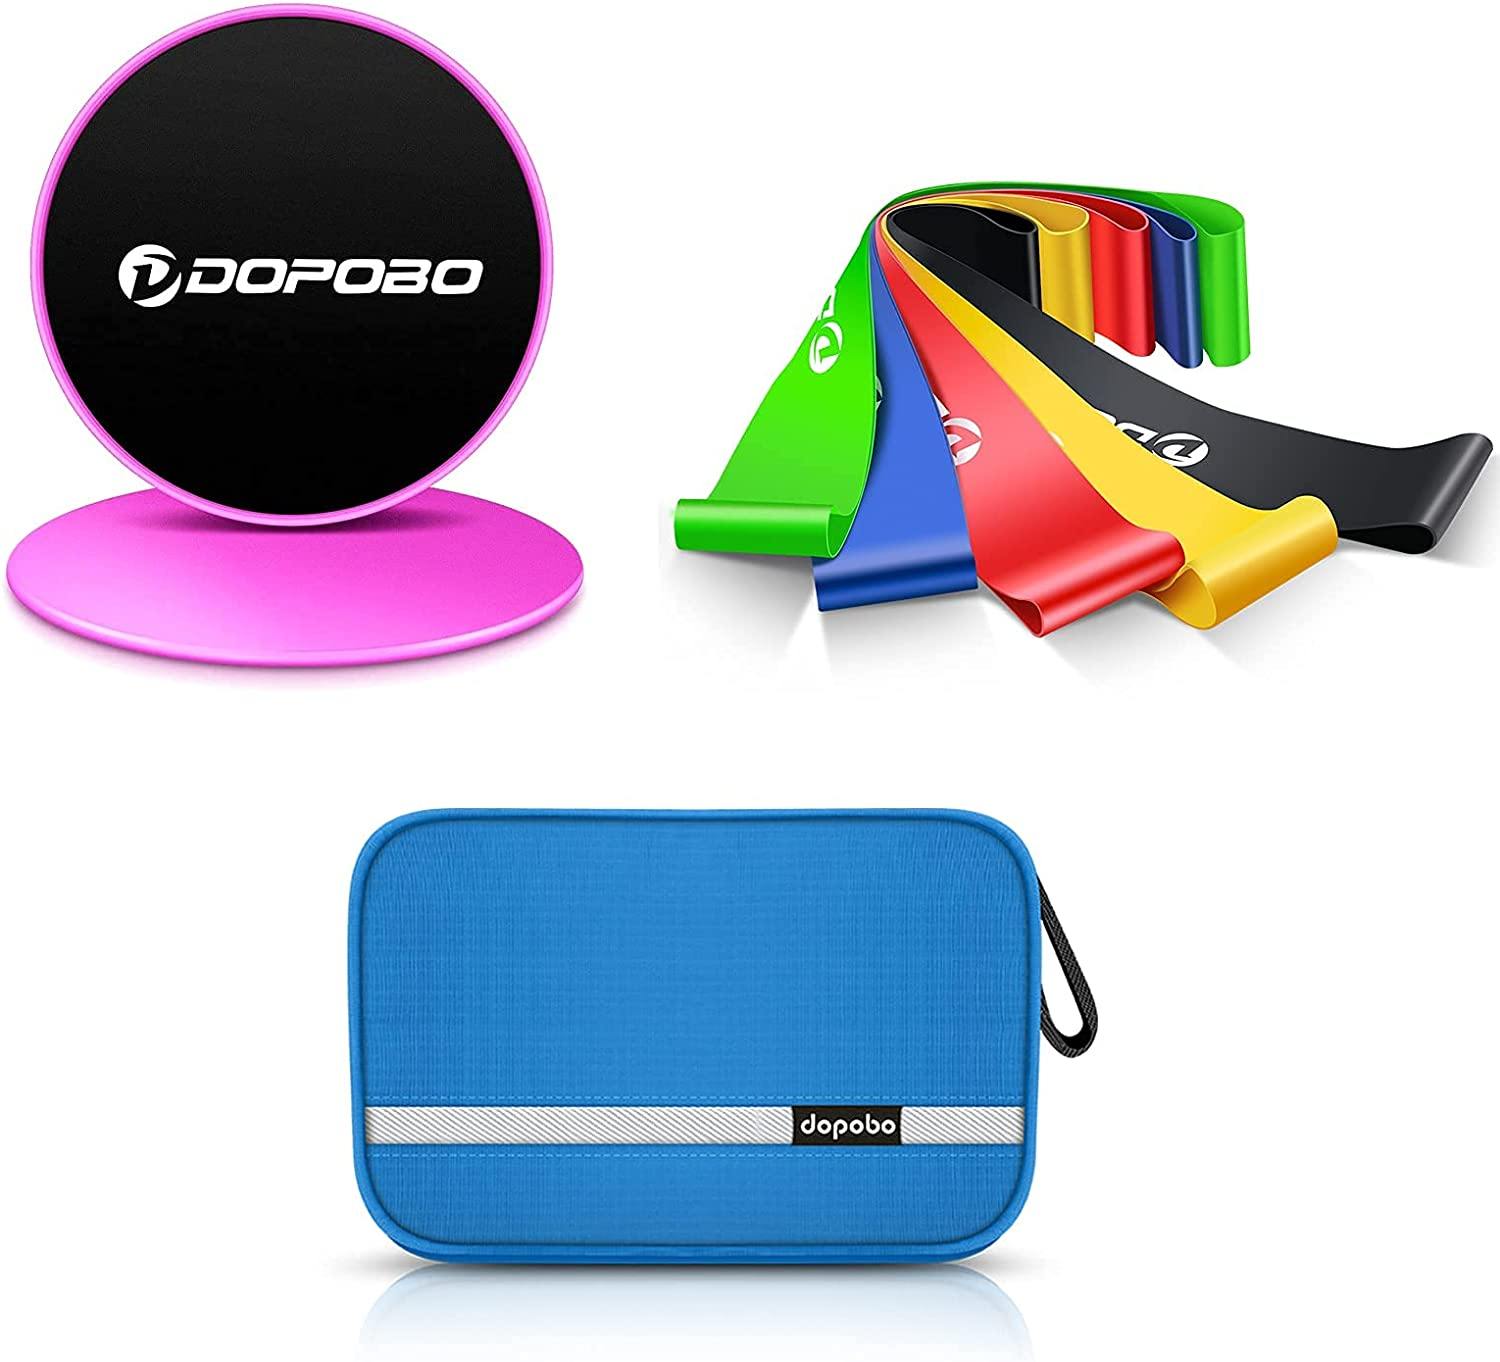 Bundle-Travel Toiletry Bag Blue + set 5 San Antonio Mall Bands Resistance of Special price for a limited time